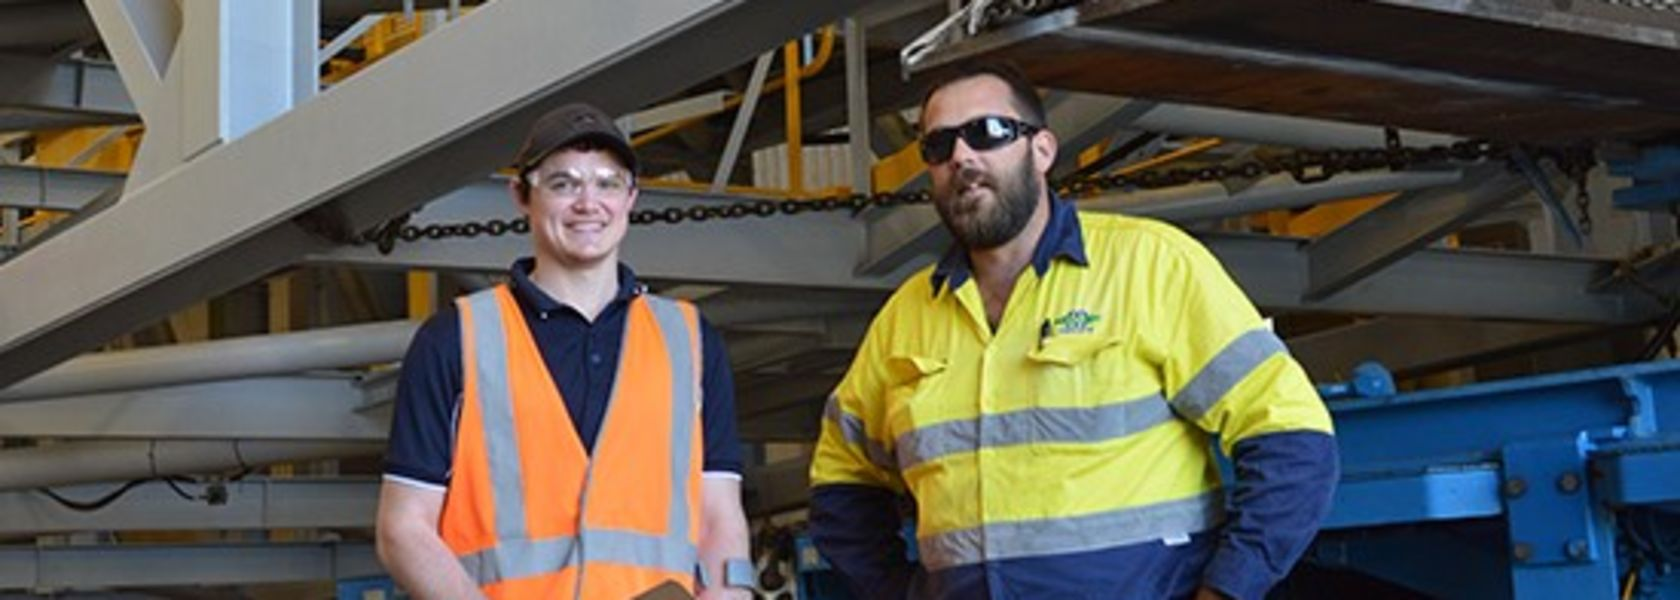 Award for employee's determination to keep working after conveyor incident